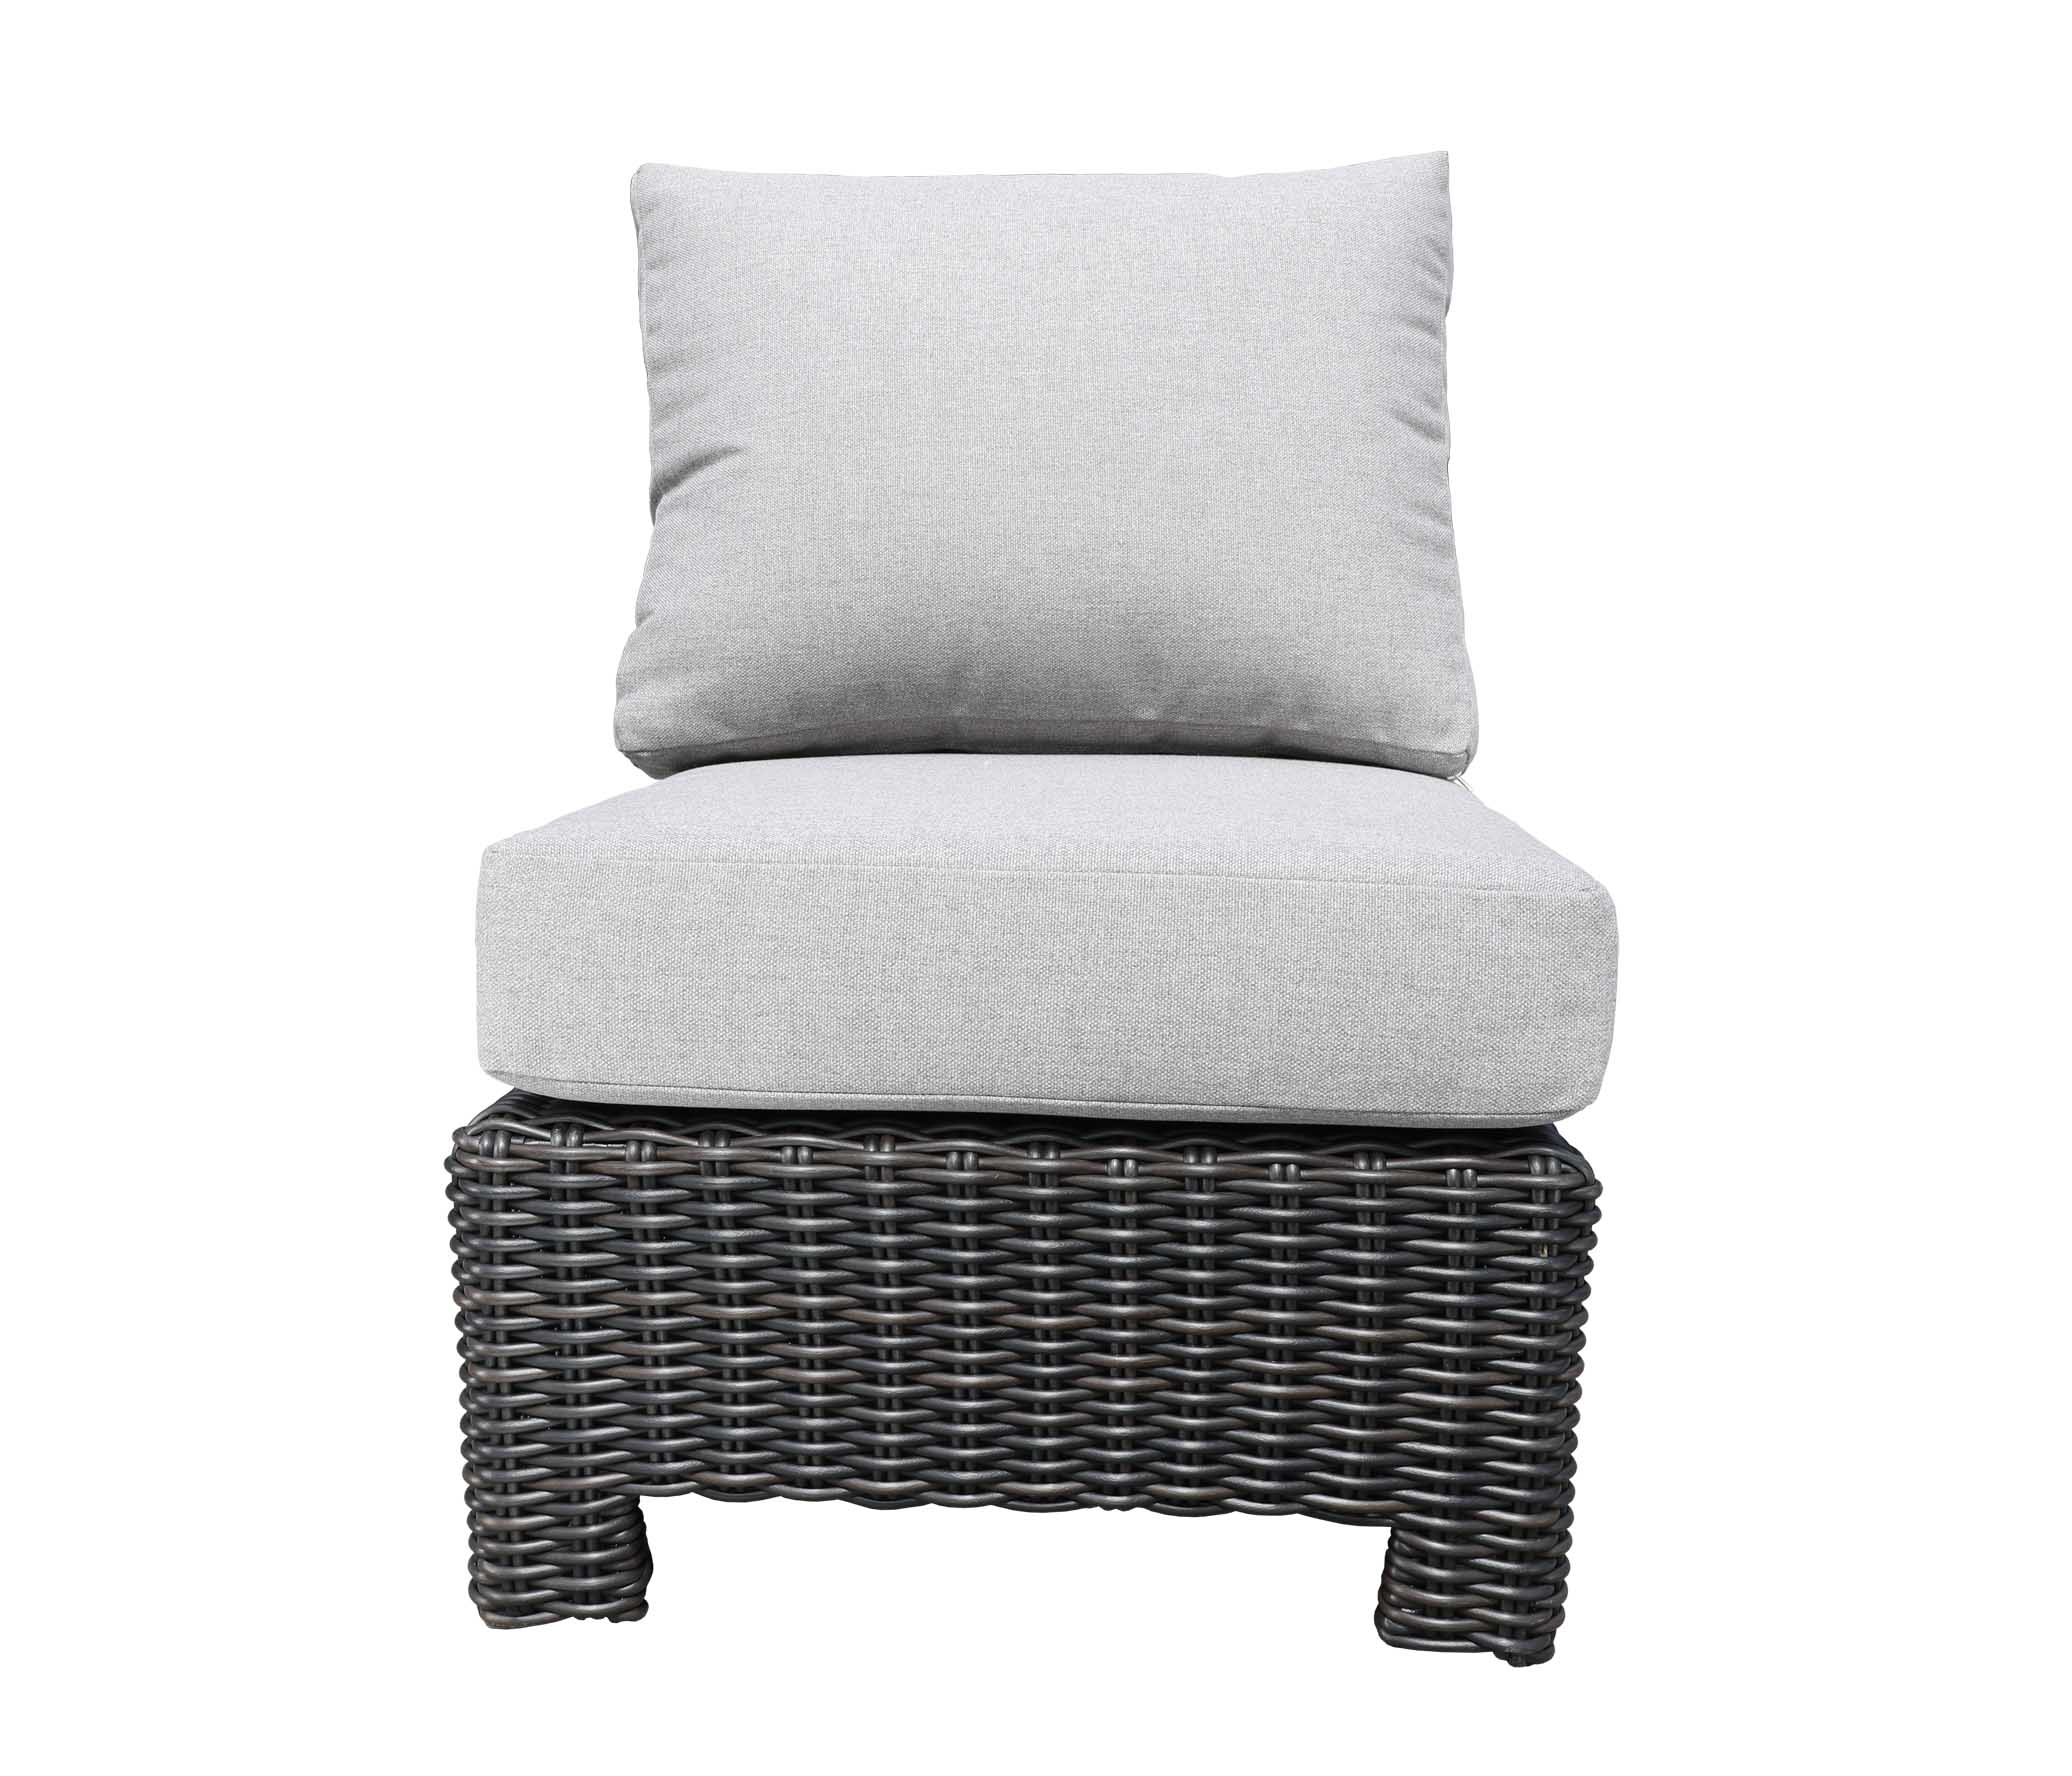 Oakville Outdoor Furniture Monterrey Slipper Chair 9432 Patio Furniture Wicker